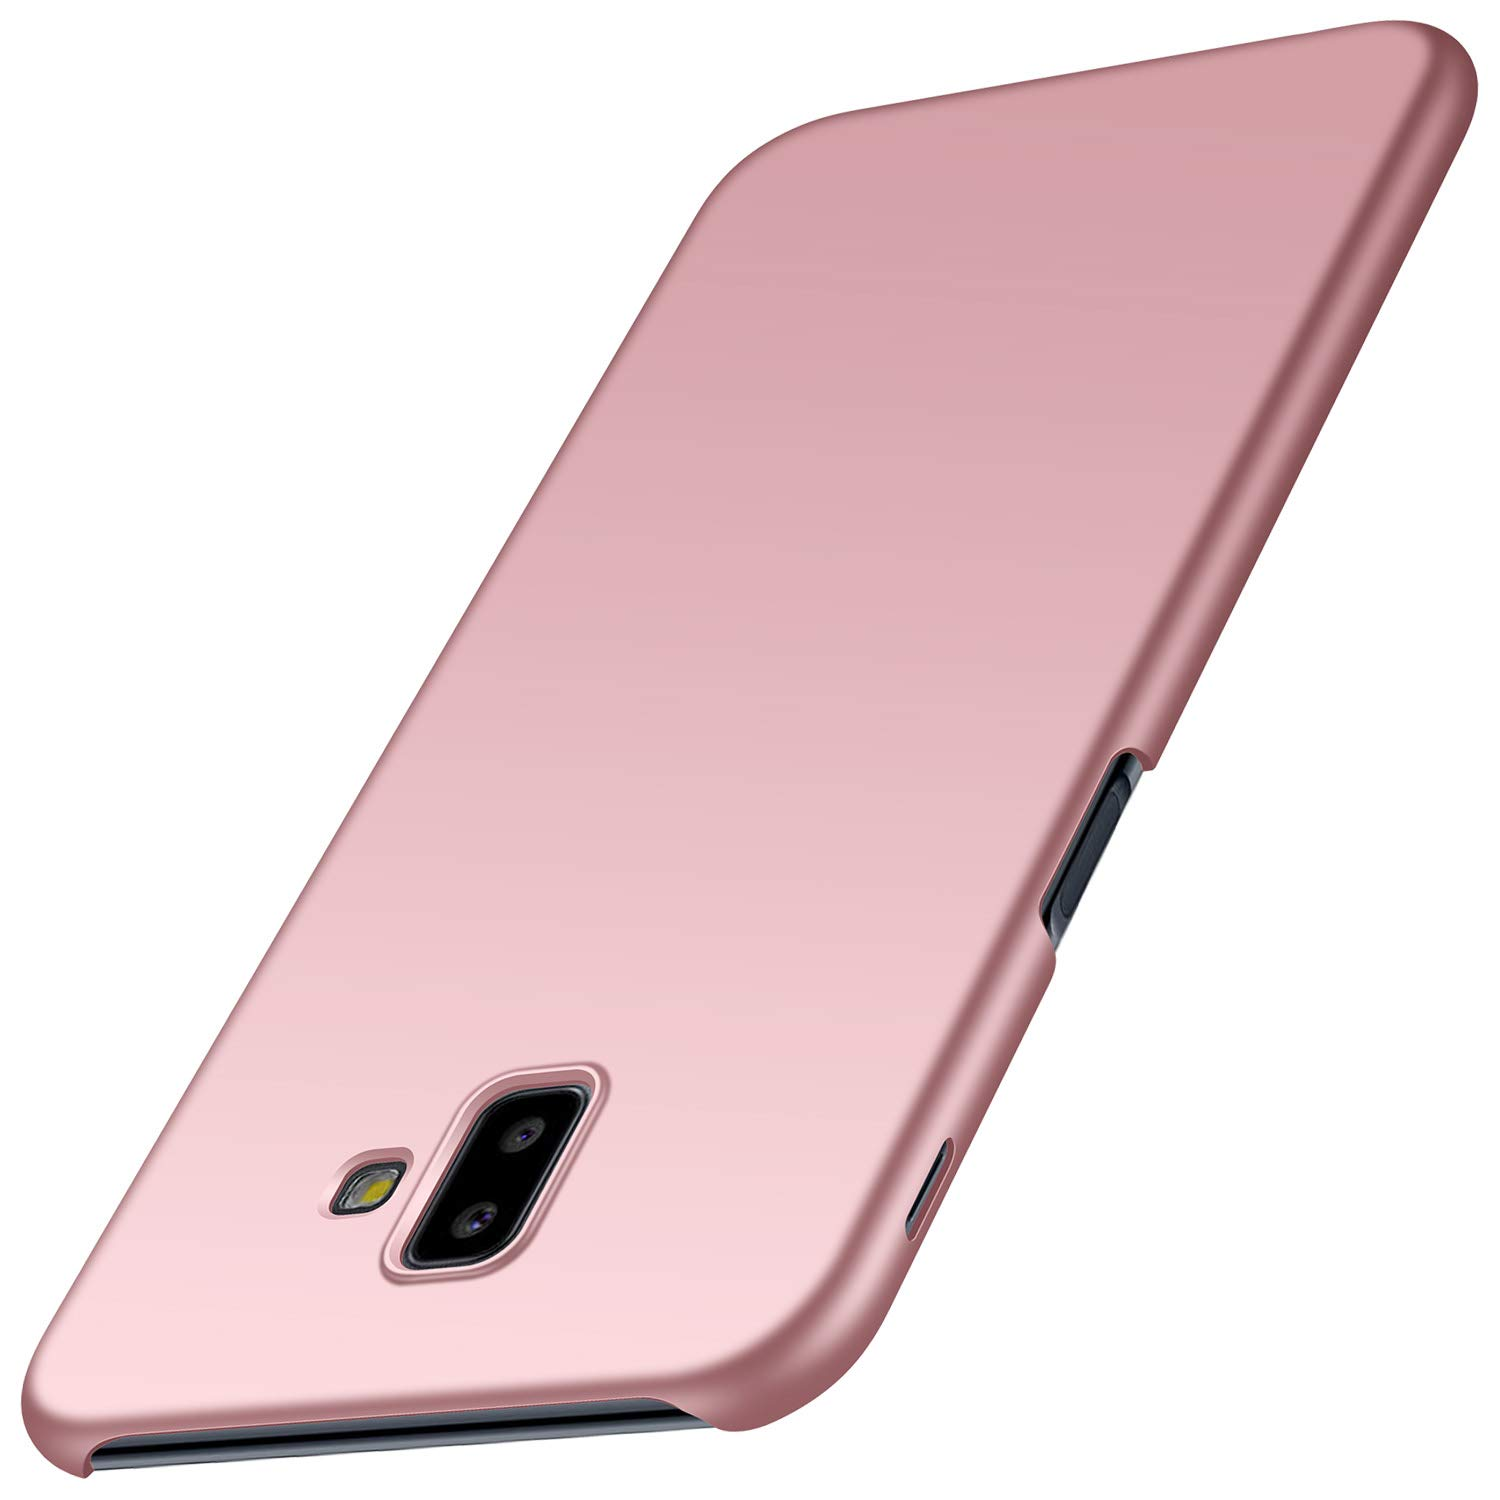 Arkour Galaxy J6 Plus Case, Minimalist Ultra Thin Slim Fit Smooth Matte Surface Hard PC Cover for Samsung Galaxy J6 Plus (Smooth Rose Gold)